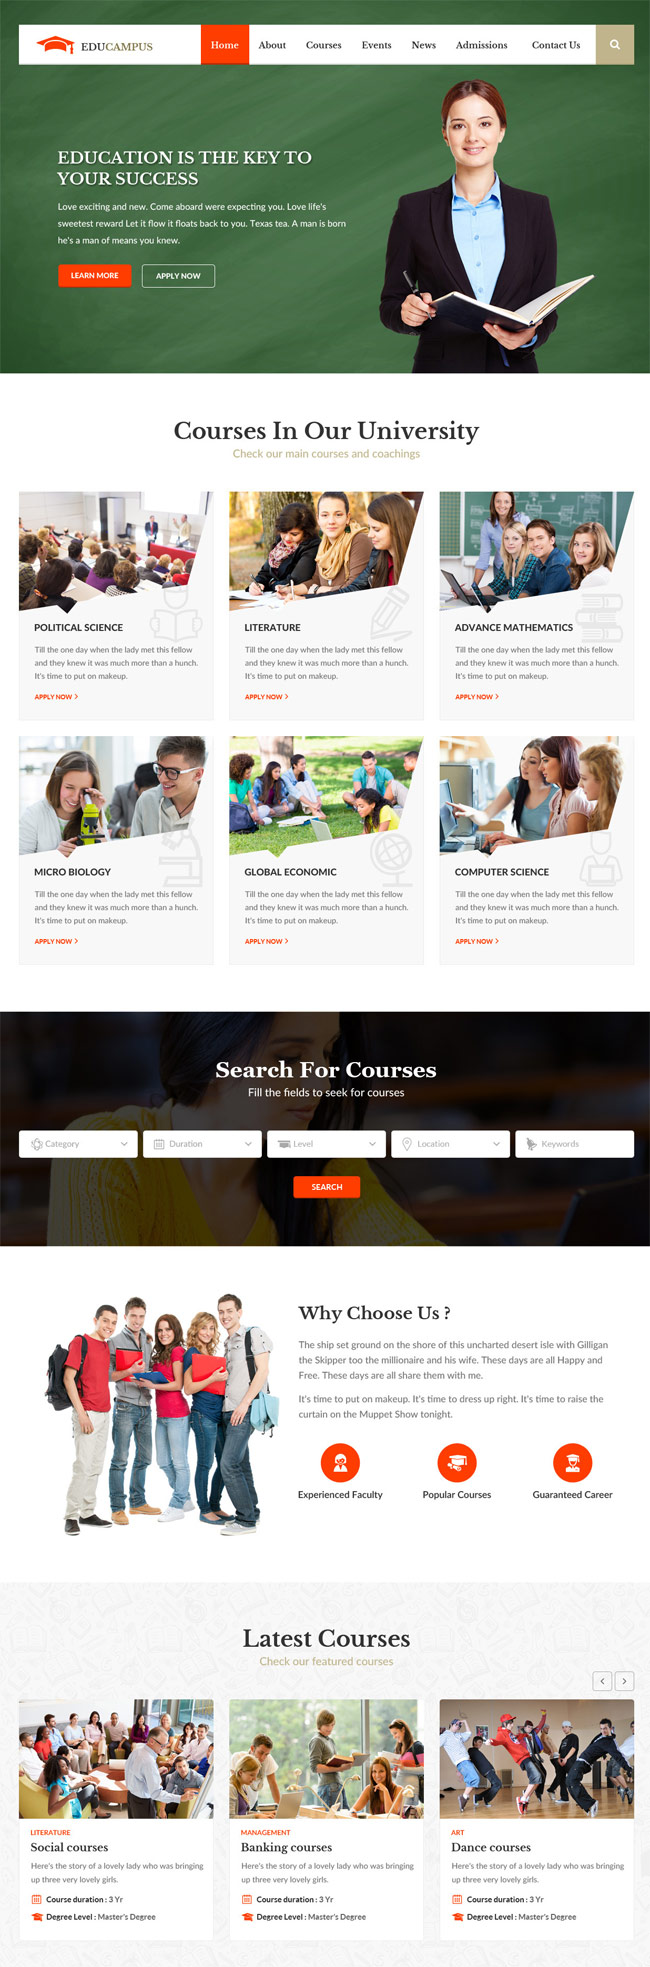 Educampus-Education-University-HTML-Template